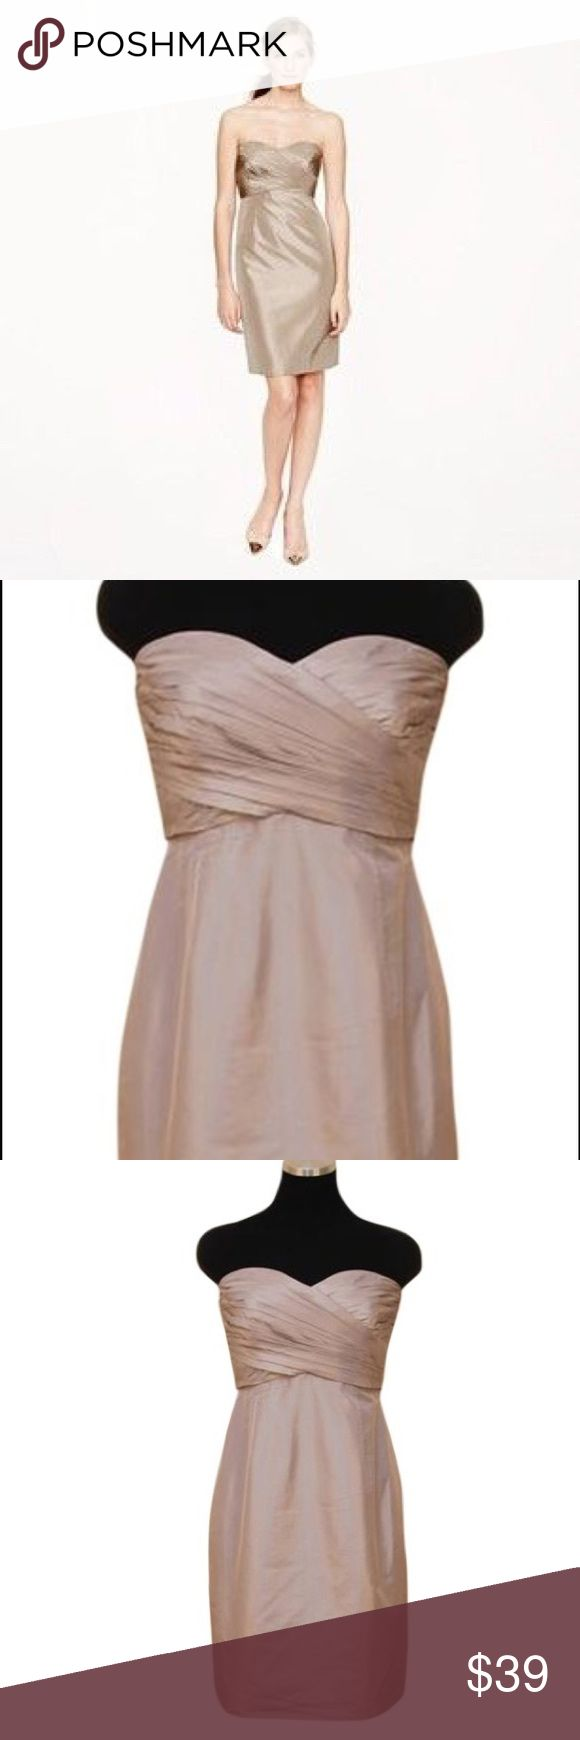 """NWT J Crew Kristin Dress Petite Lt brown Color is """"fawn"""" - shiny lt brown. Straight silhouette. Back zip. Silk taffeta. Strapless. Sweetheart bodice w interior corset for added support.. Tiny pleats. Tags have been marked to prevent store returns J. Crew Dresses Strapless"""